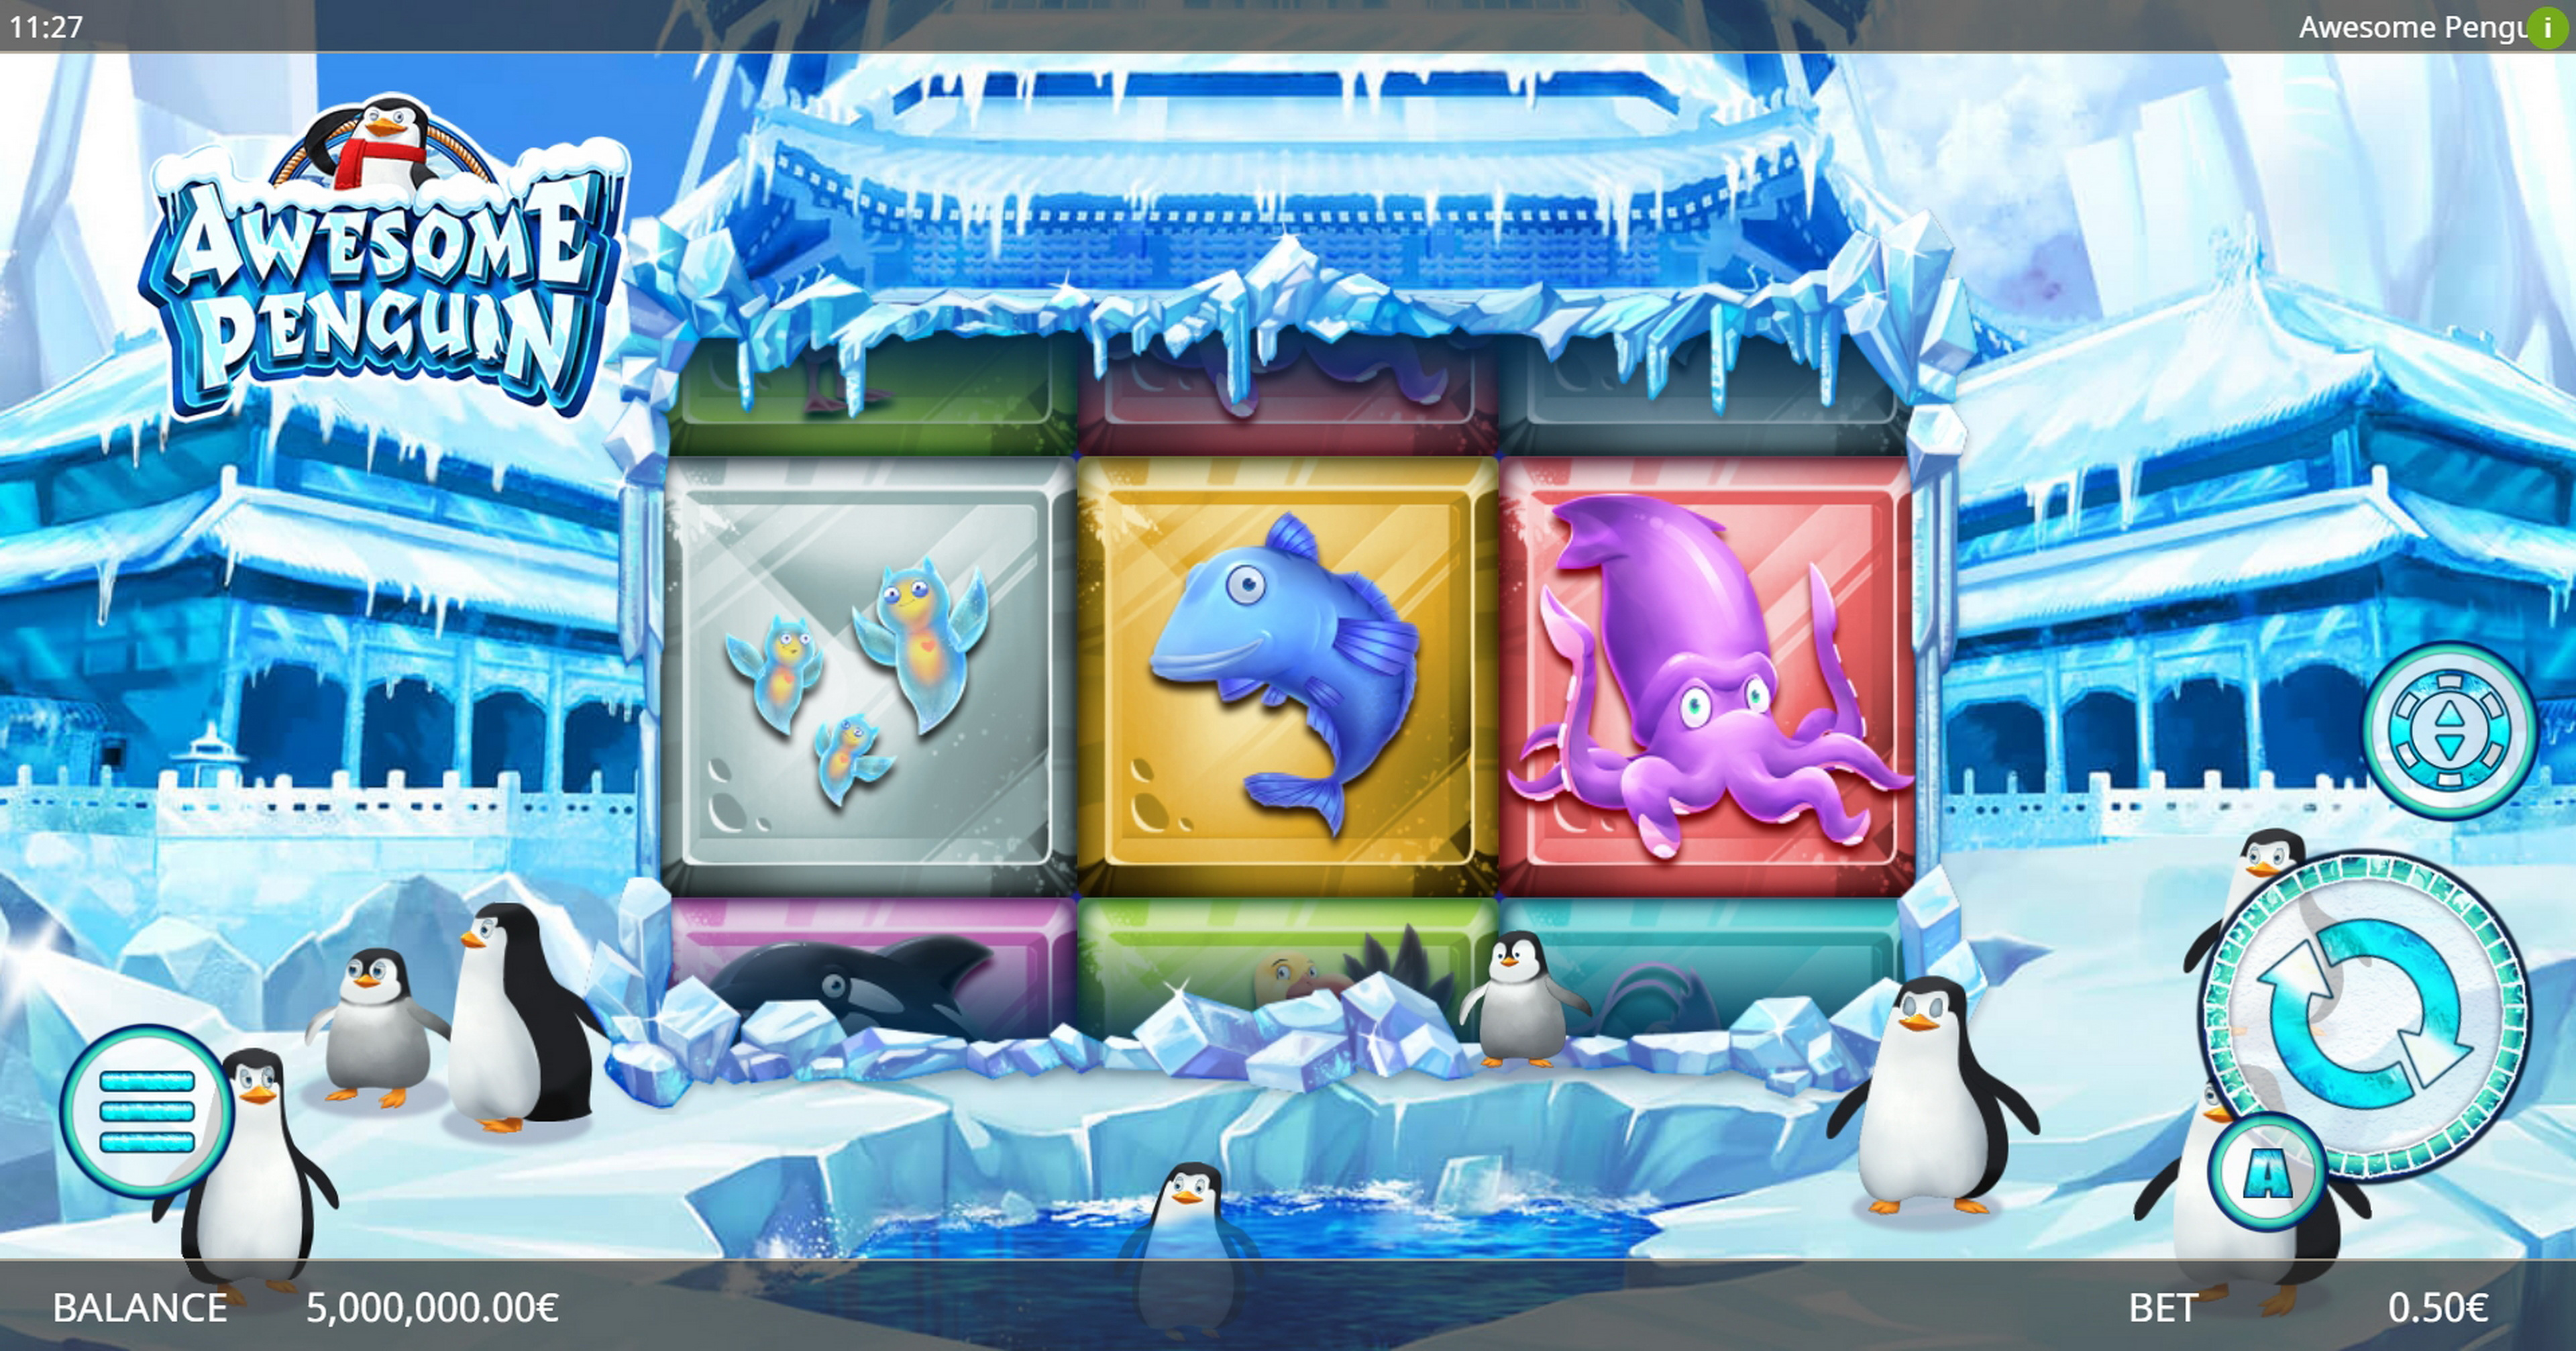 Reels in Awesome Penguin Slot Game by Ganapati